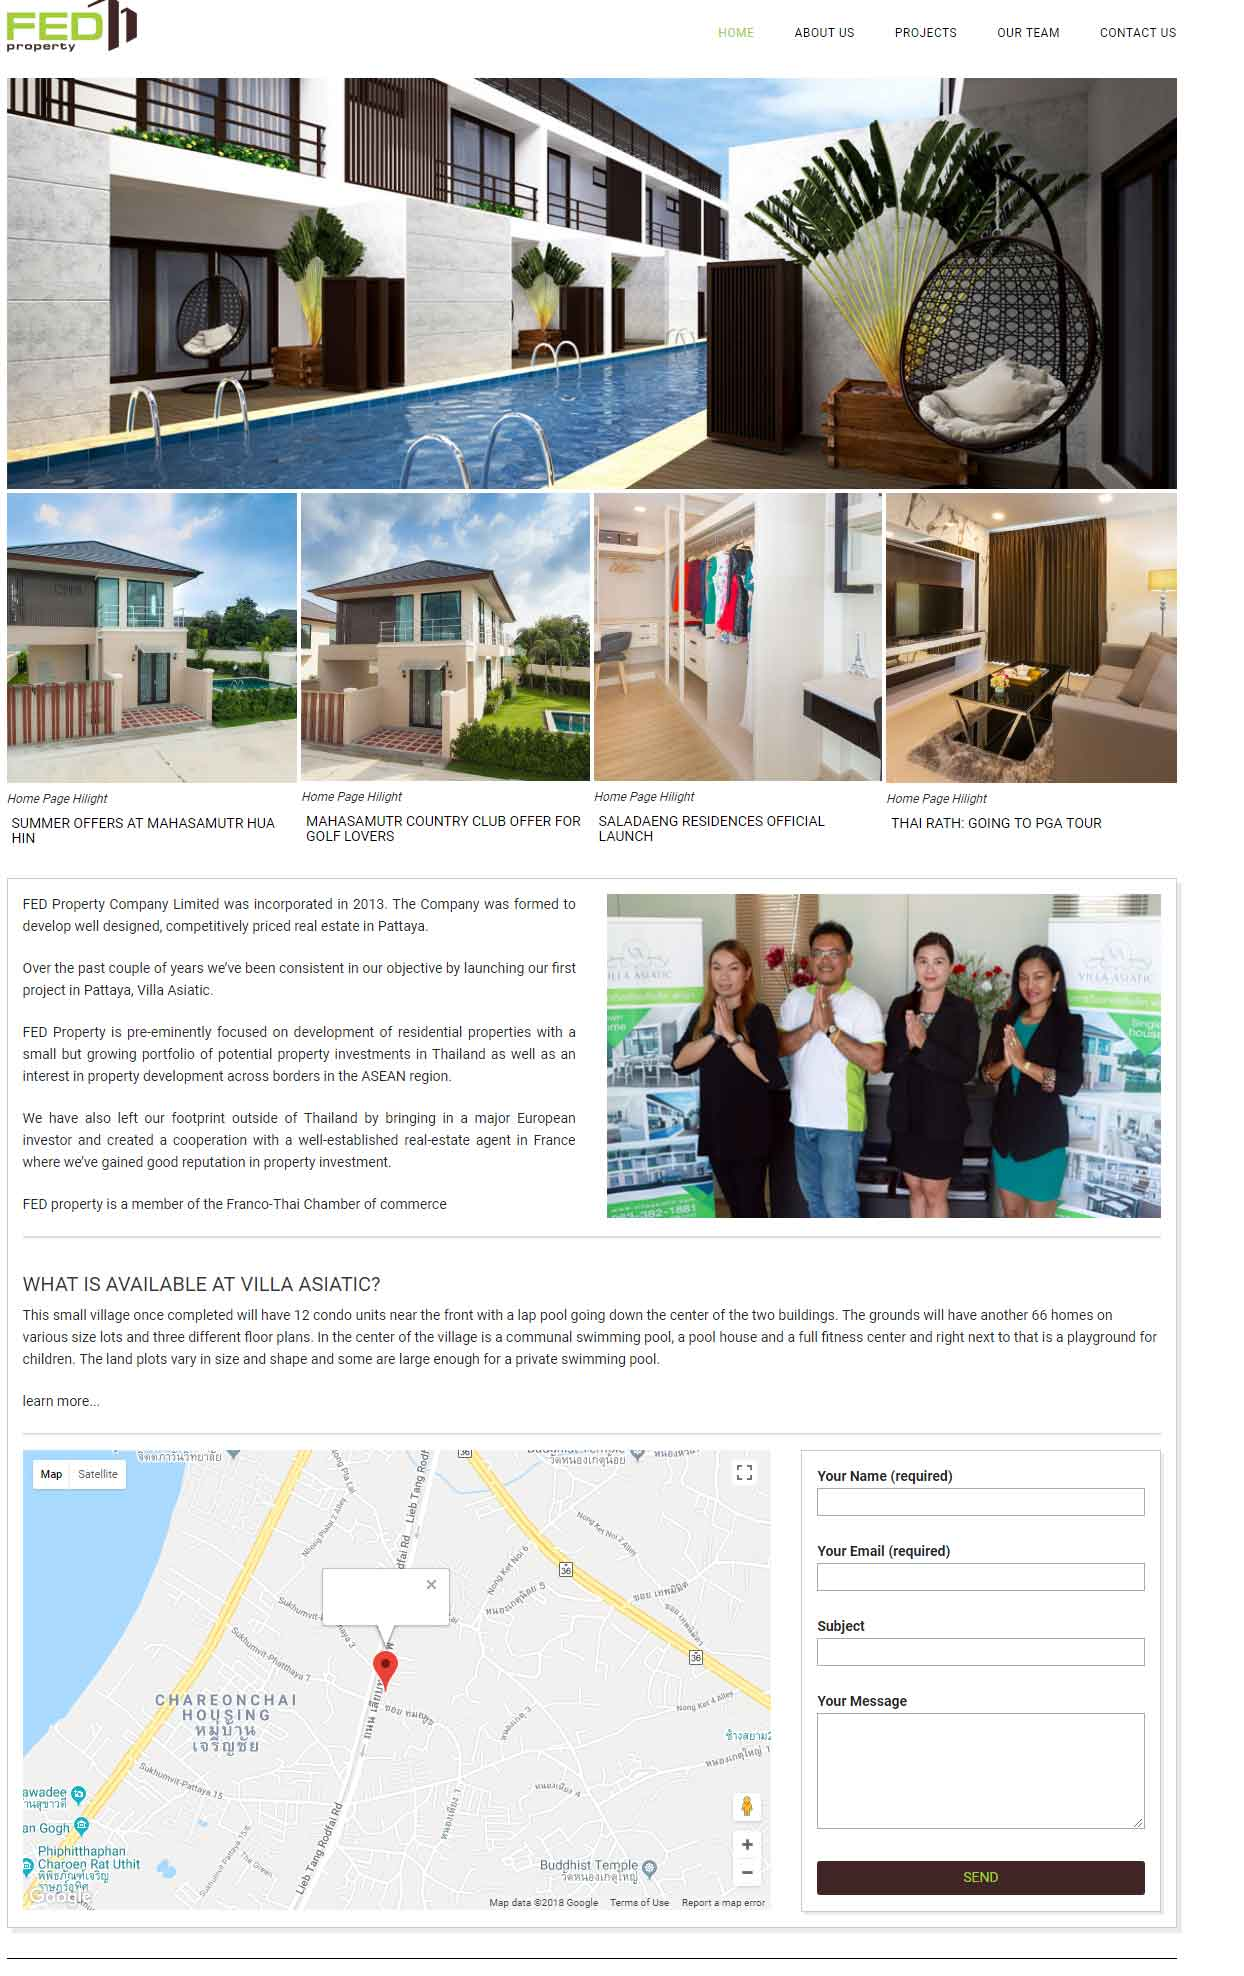 Fedproperty By Villa Asiatic Pattaya